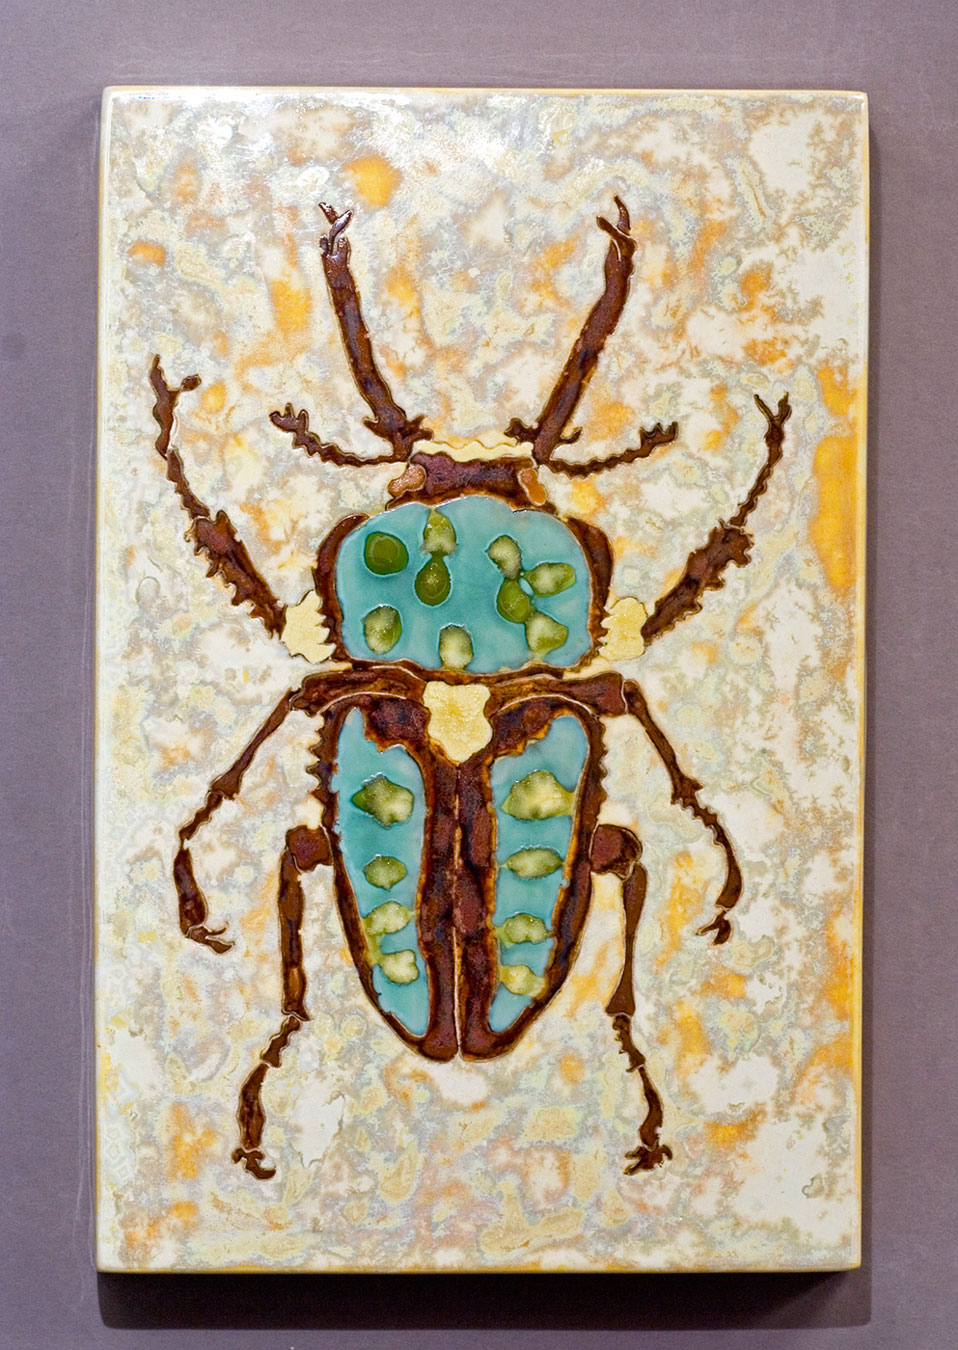 Beetle-Painting-Art-Samantha-Henneke.jpg